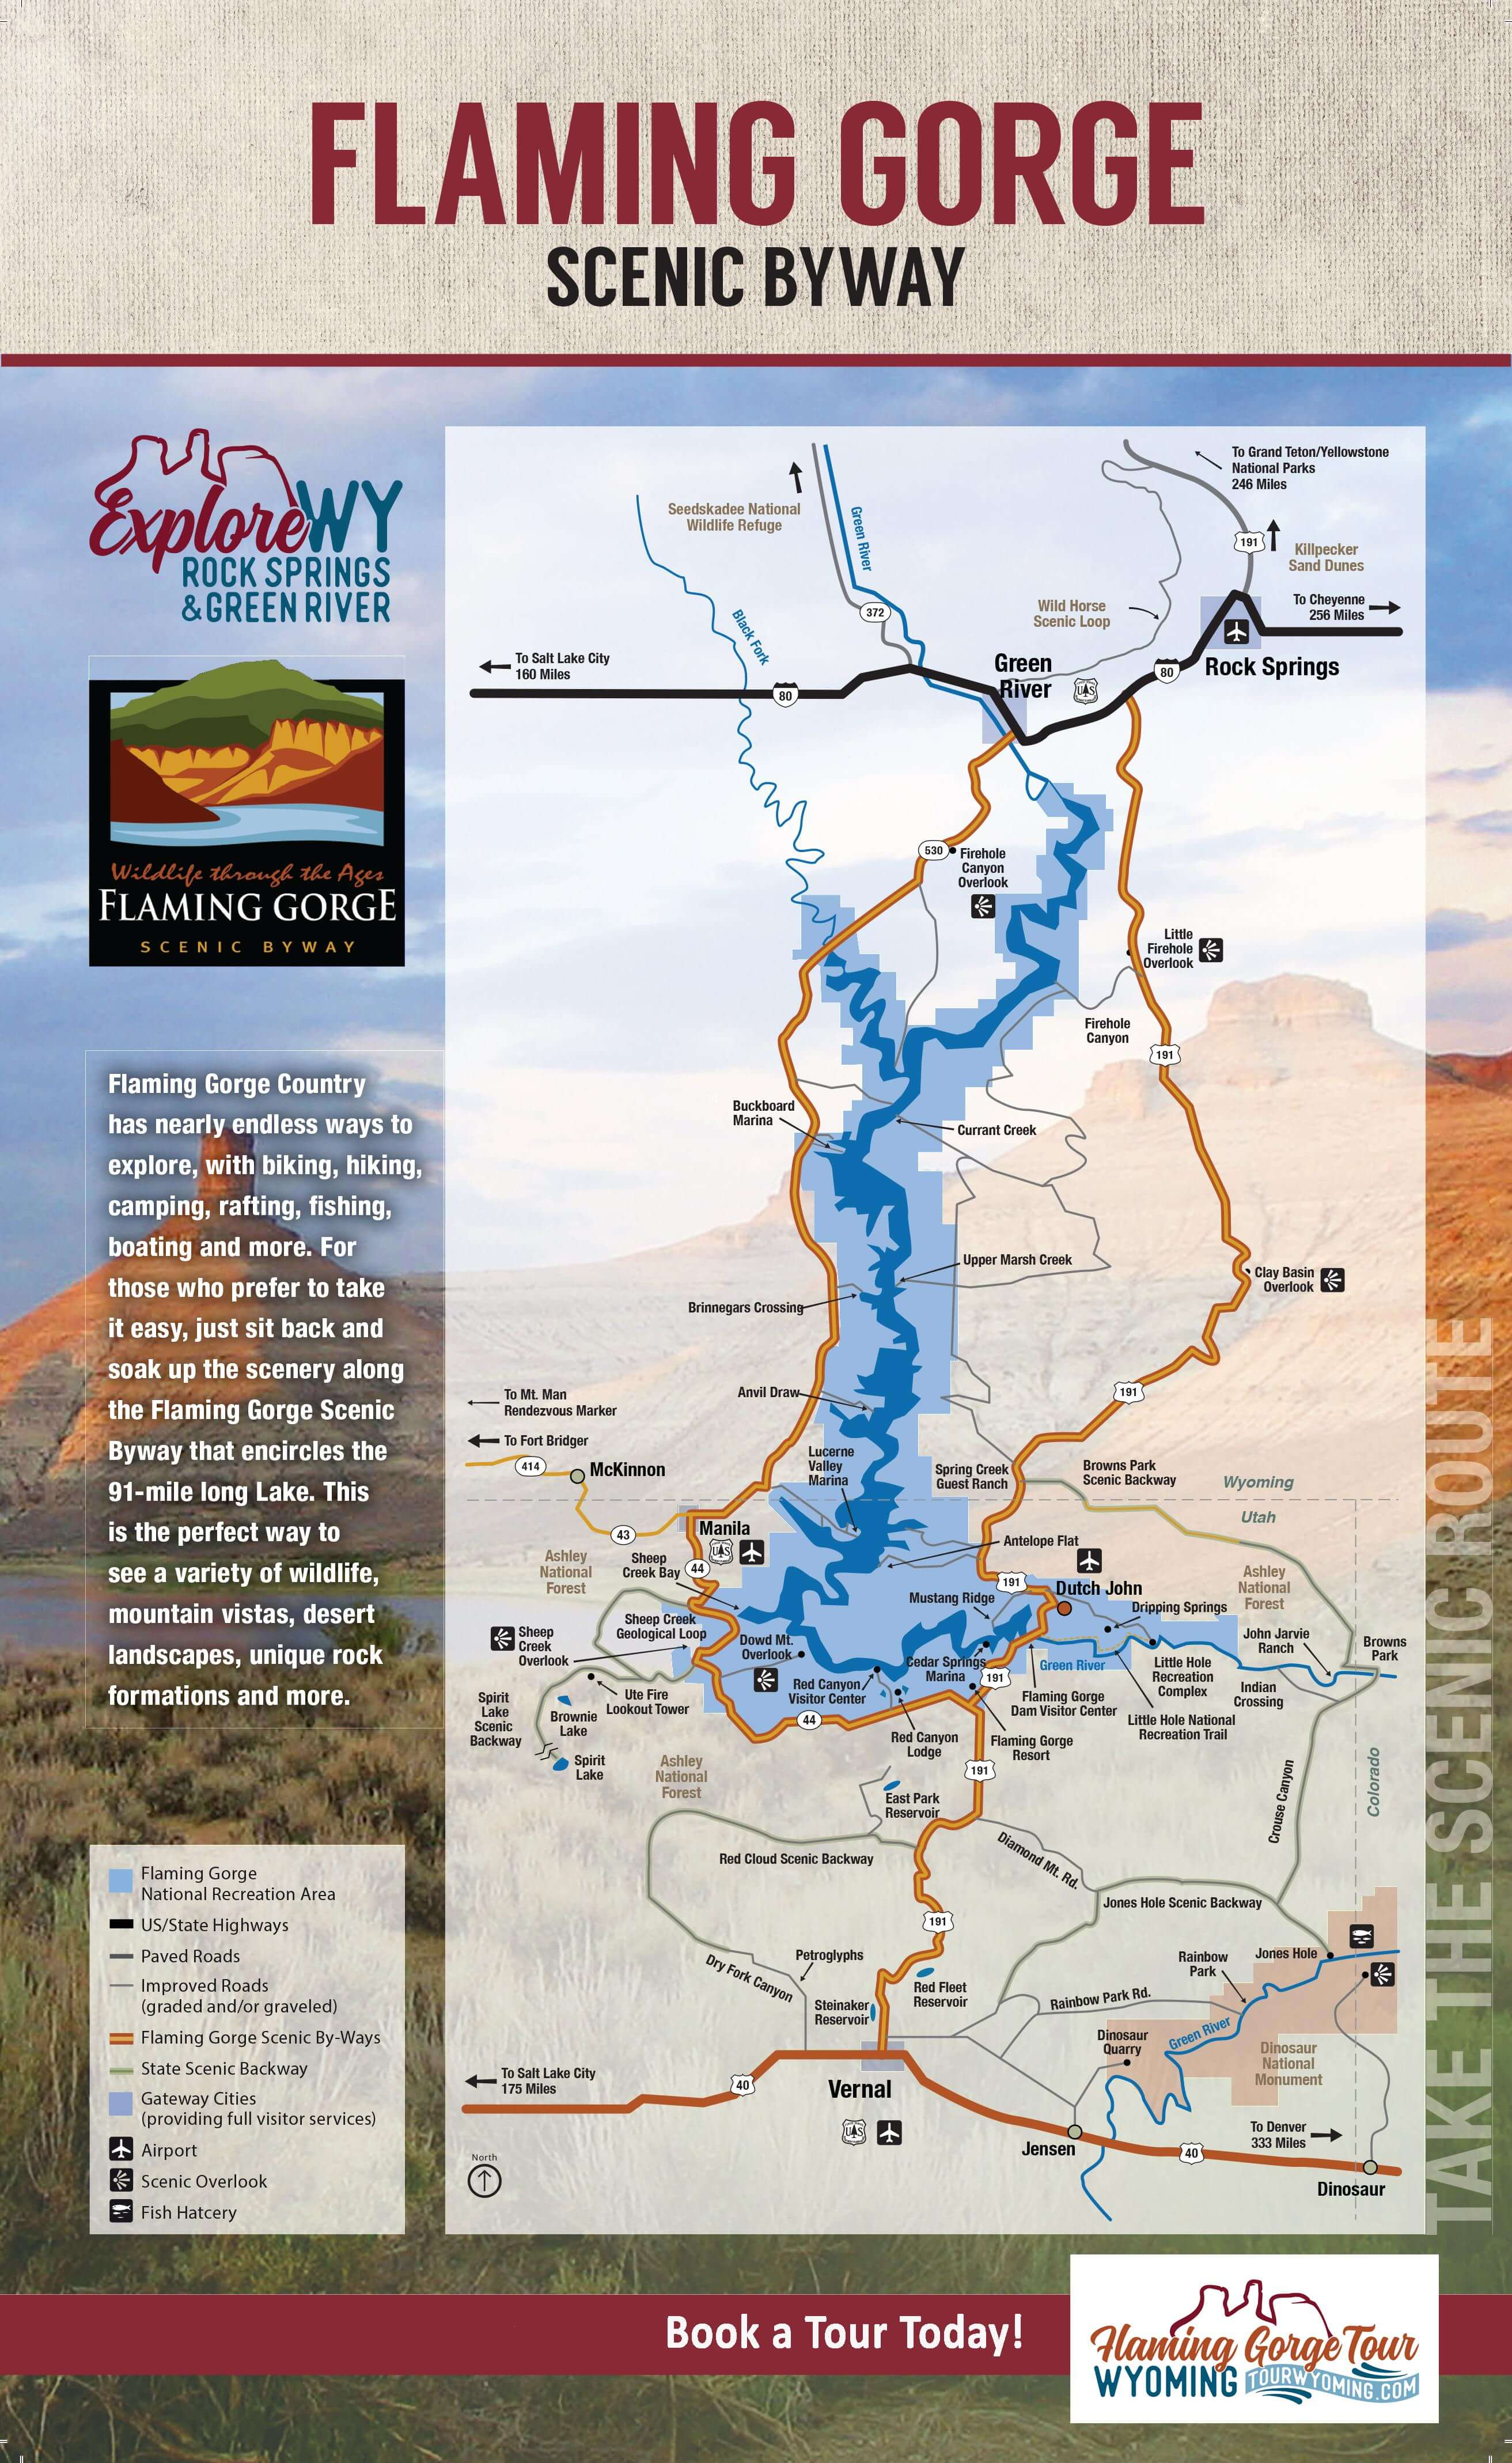 Map of Flaming Gorge Scenic byway